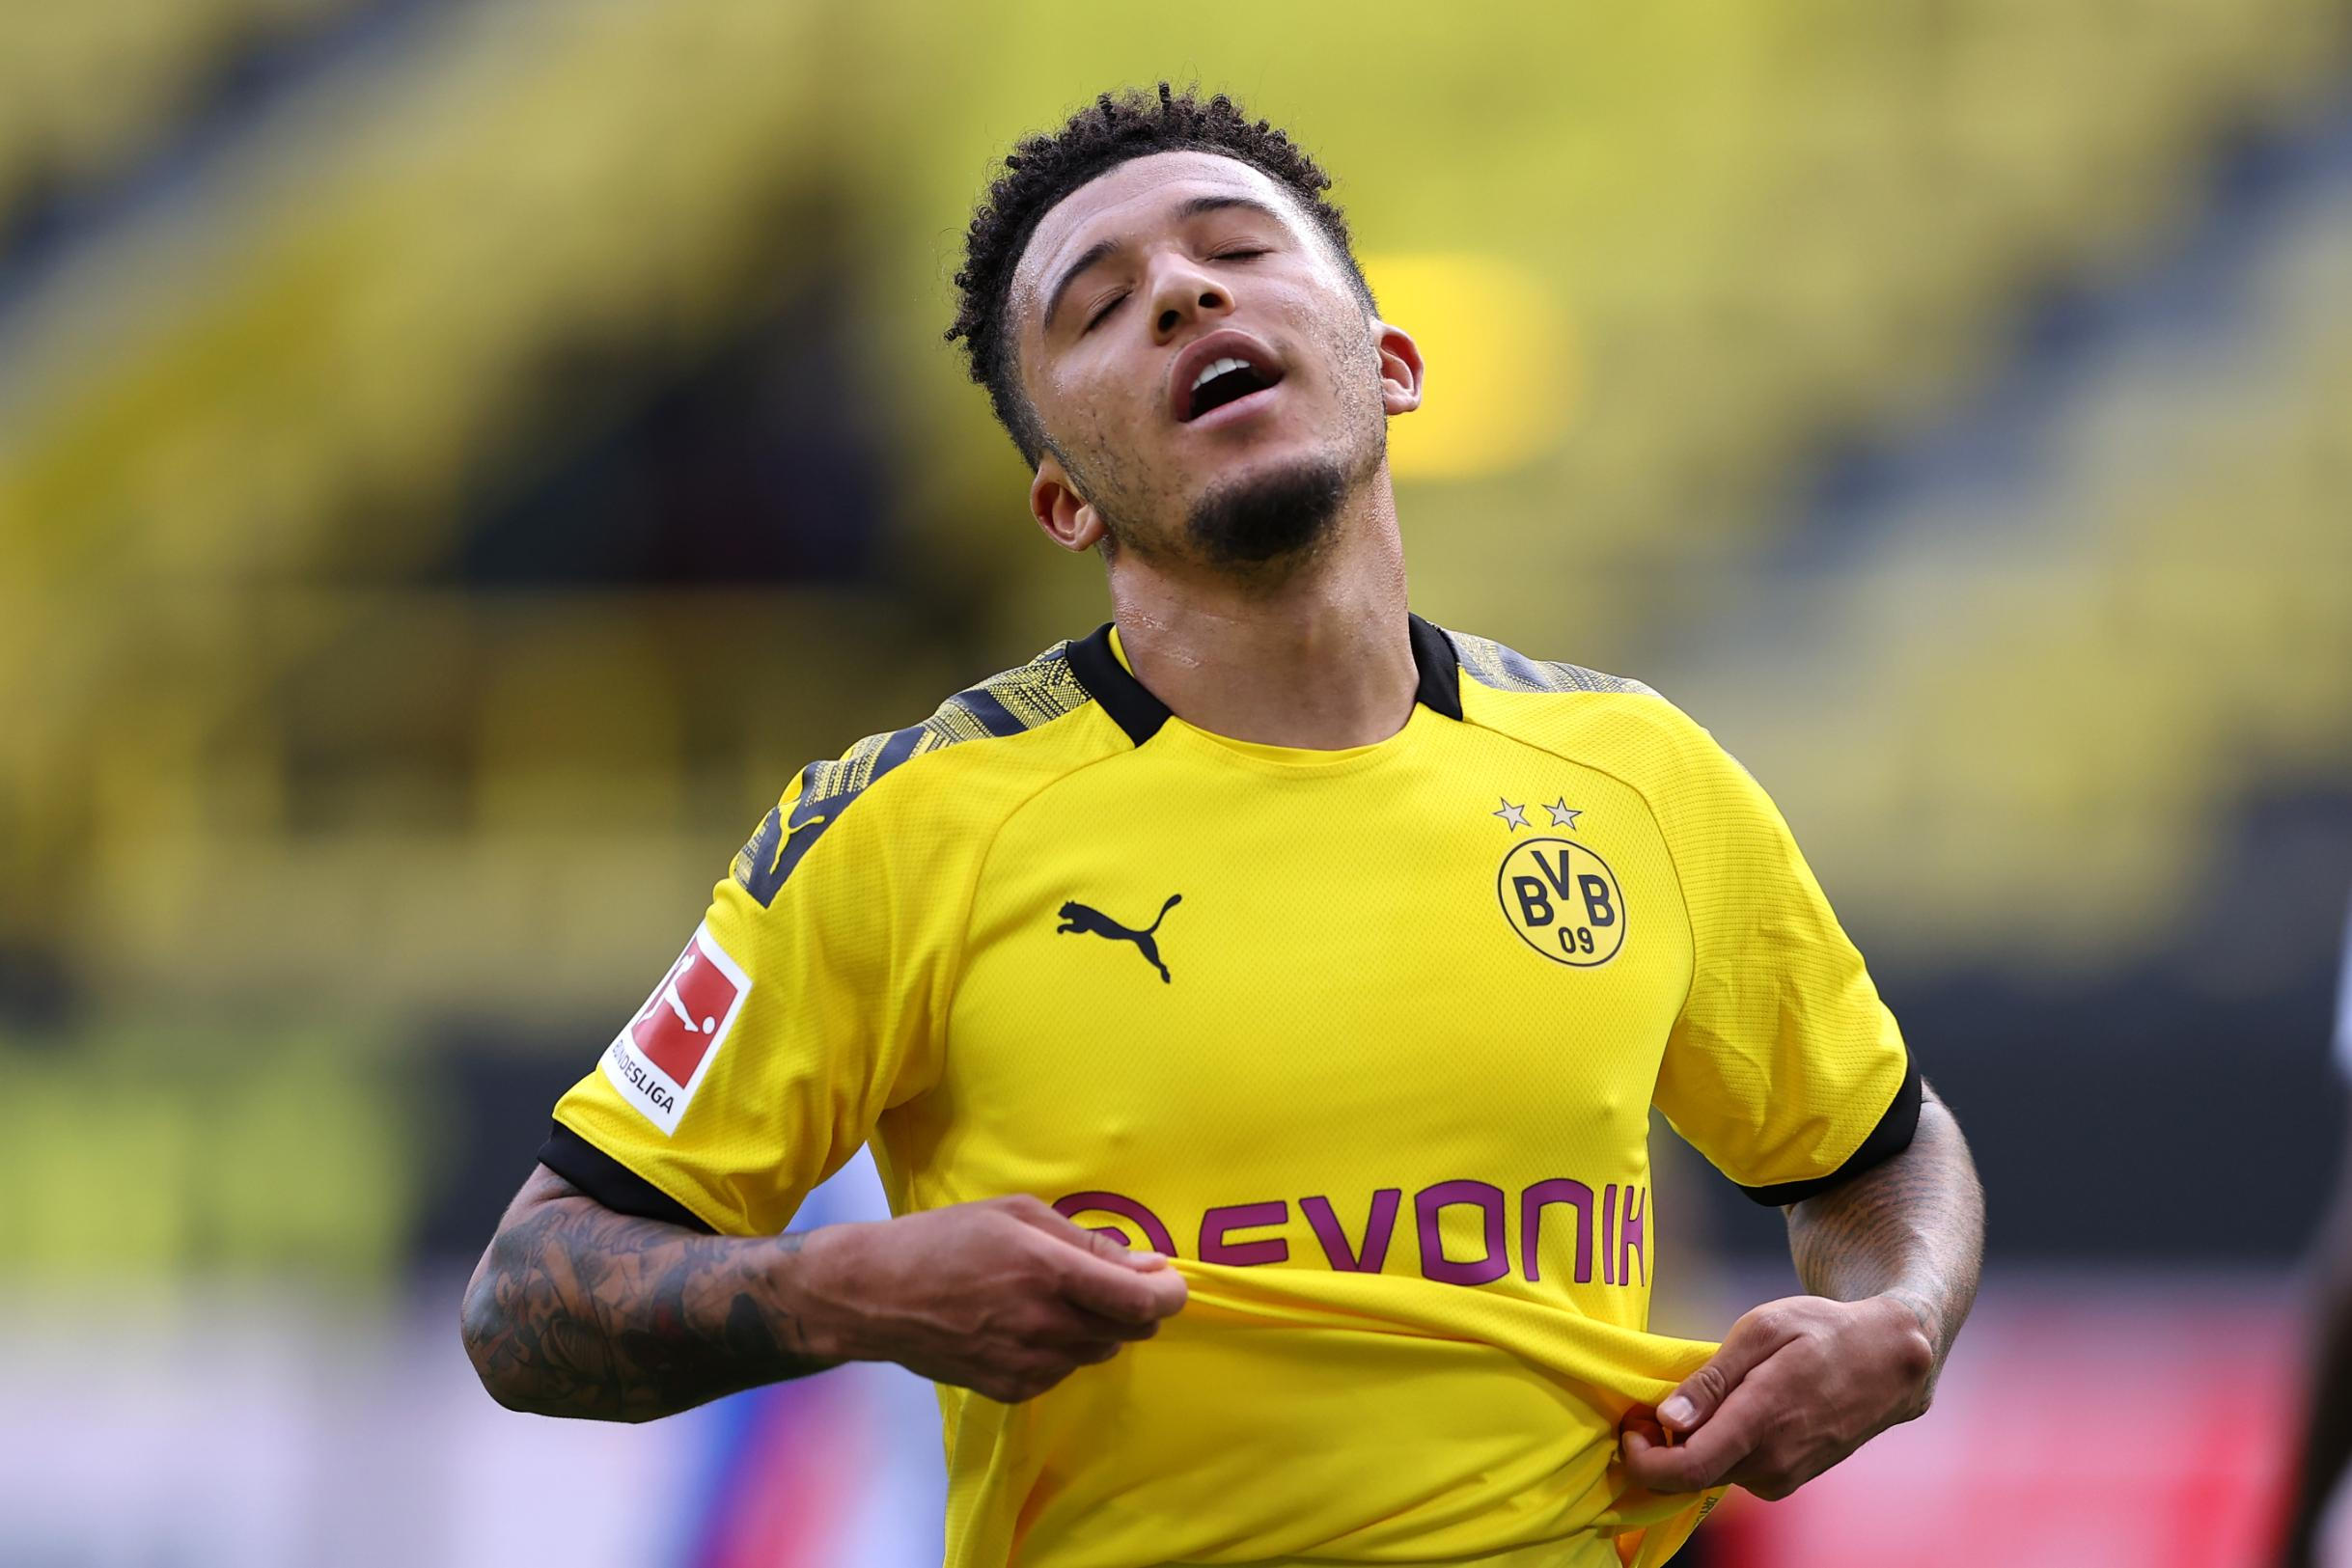 Borussia Dortmund digs its heels to stop Manchester United signing Jadon Sancho